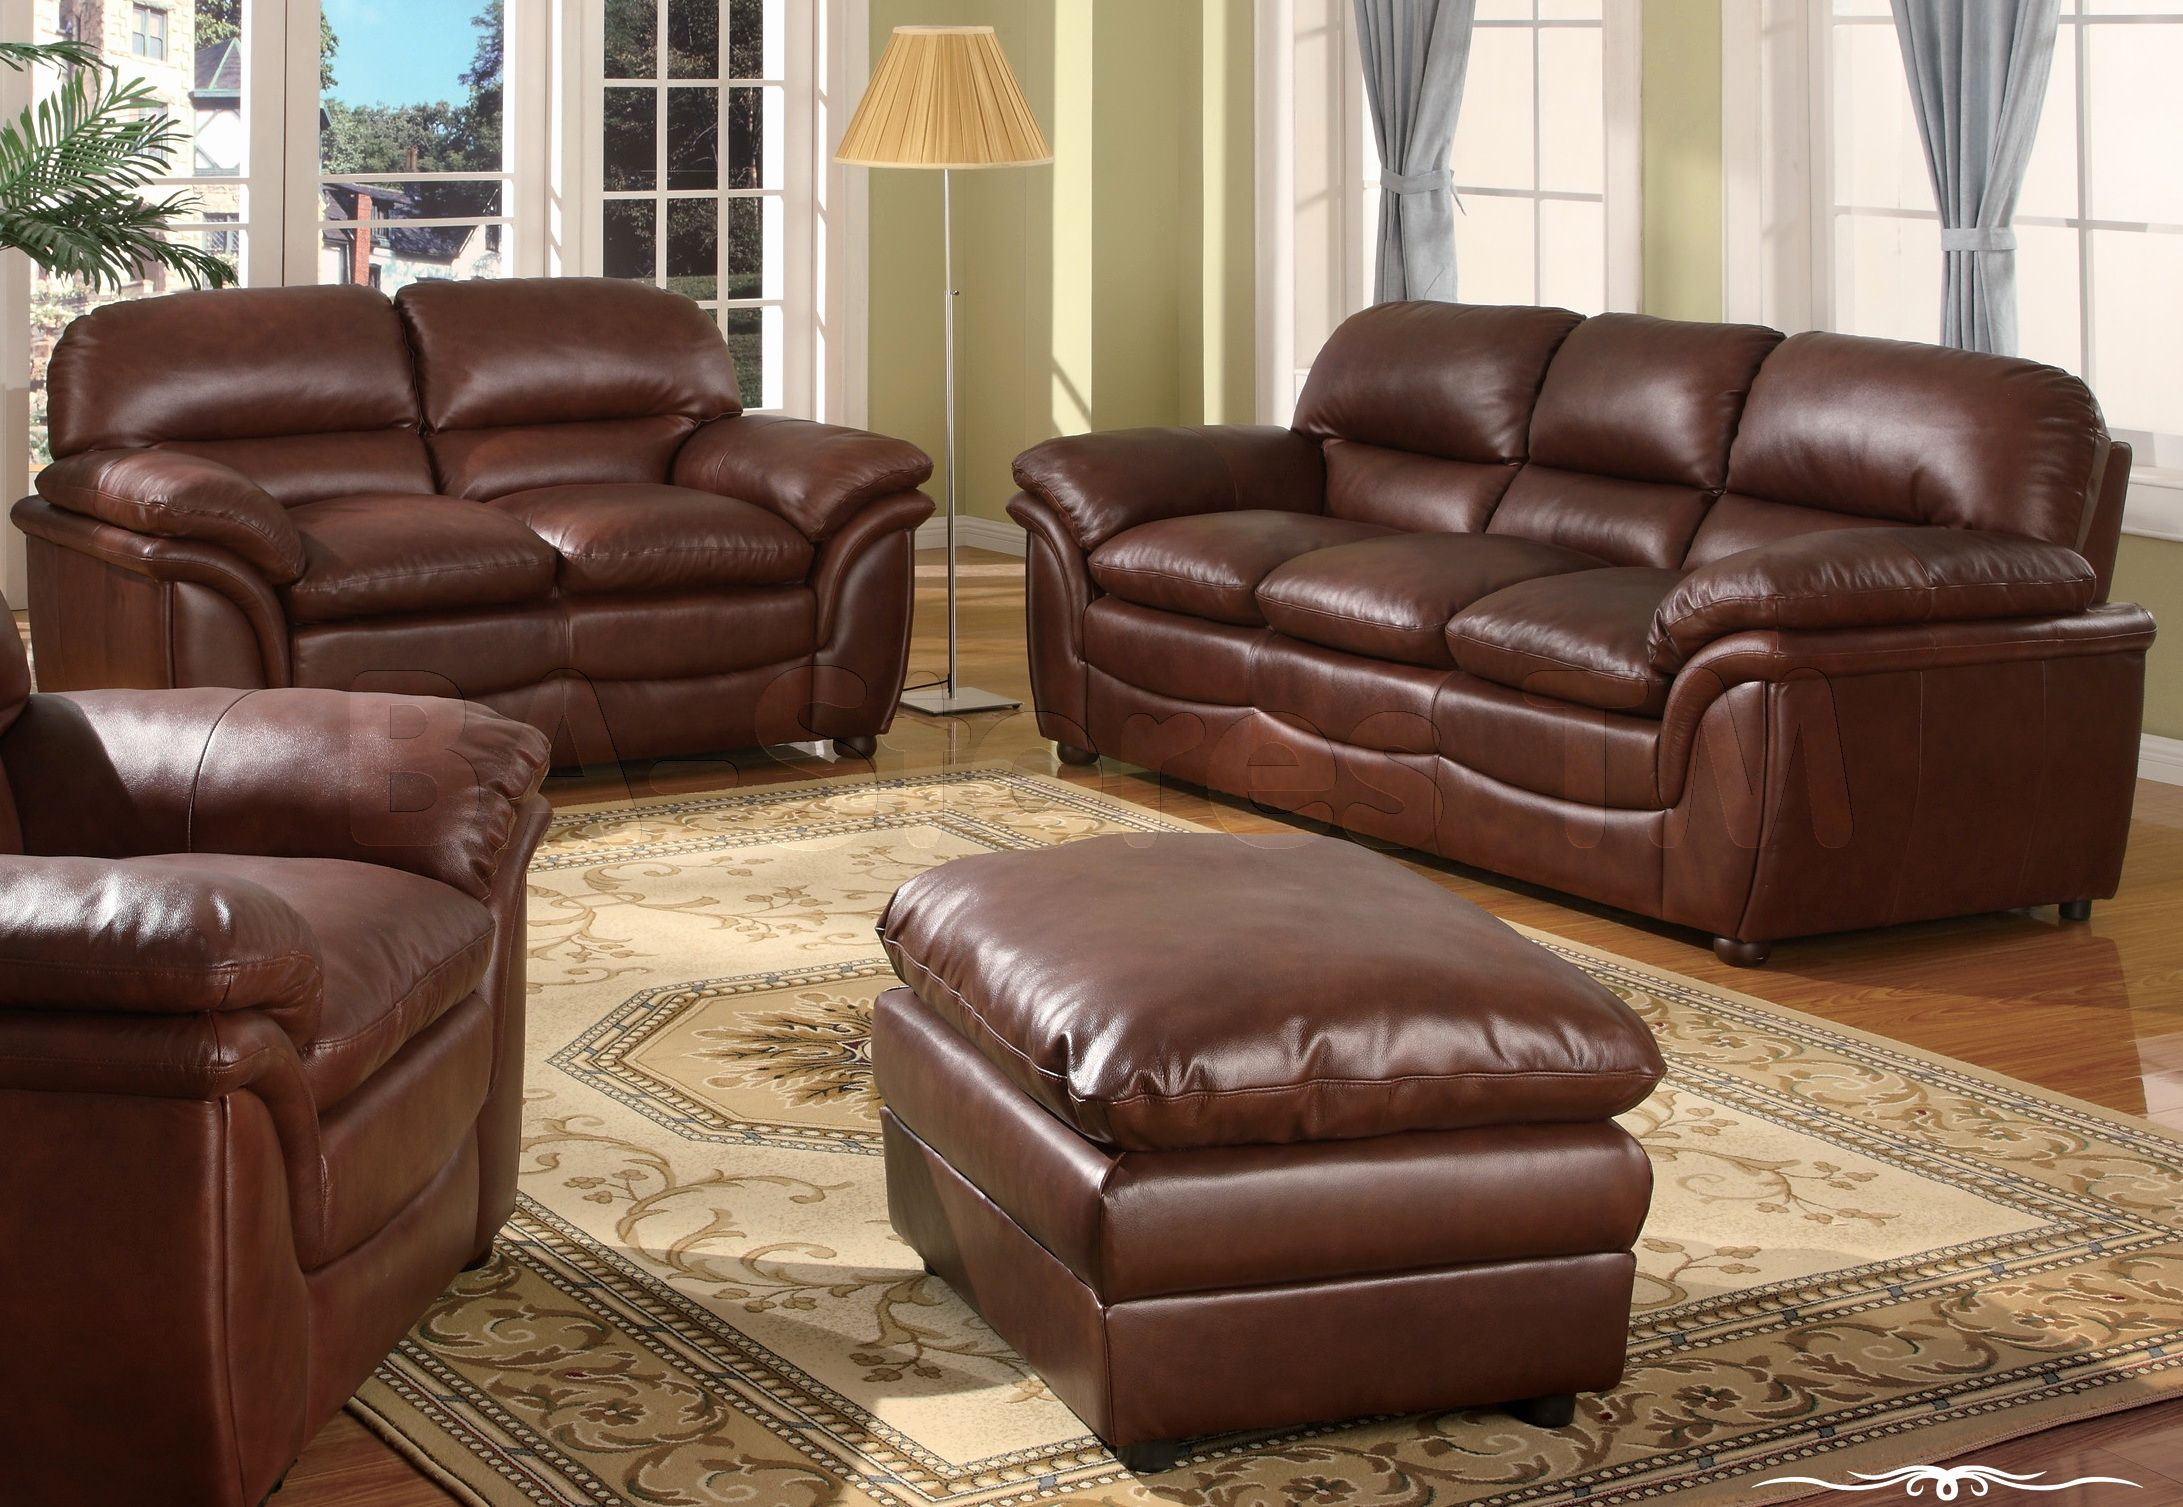 Good Elegant And Comfortable Sofa Set Art Impressive Leather Sofa Set Picture Concept Help Leather Couches Living Room Brown Leather Couch Living Room Sofa Set